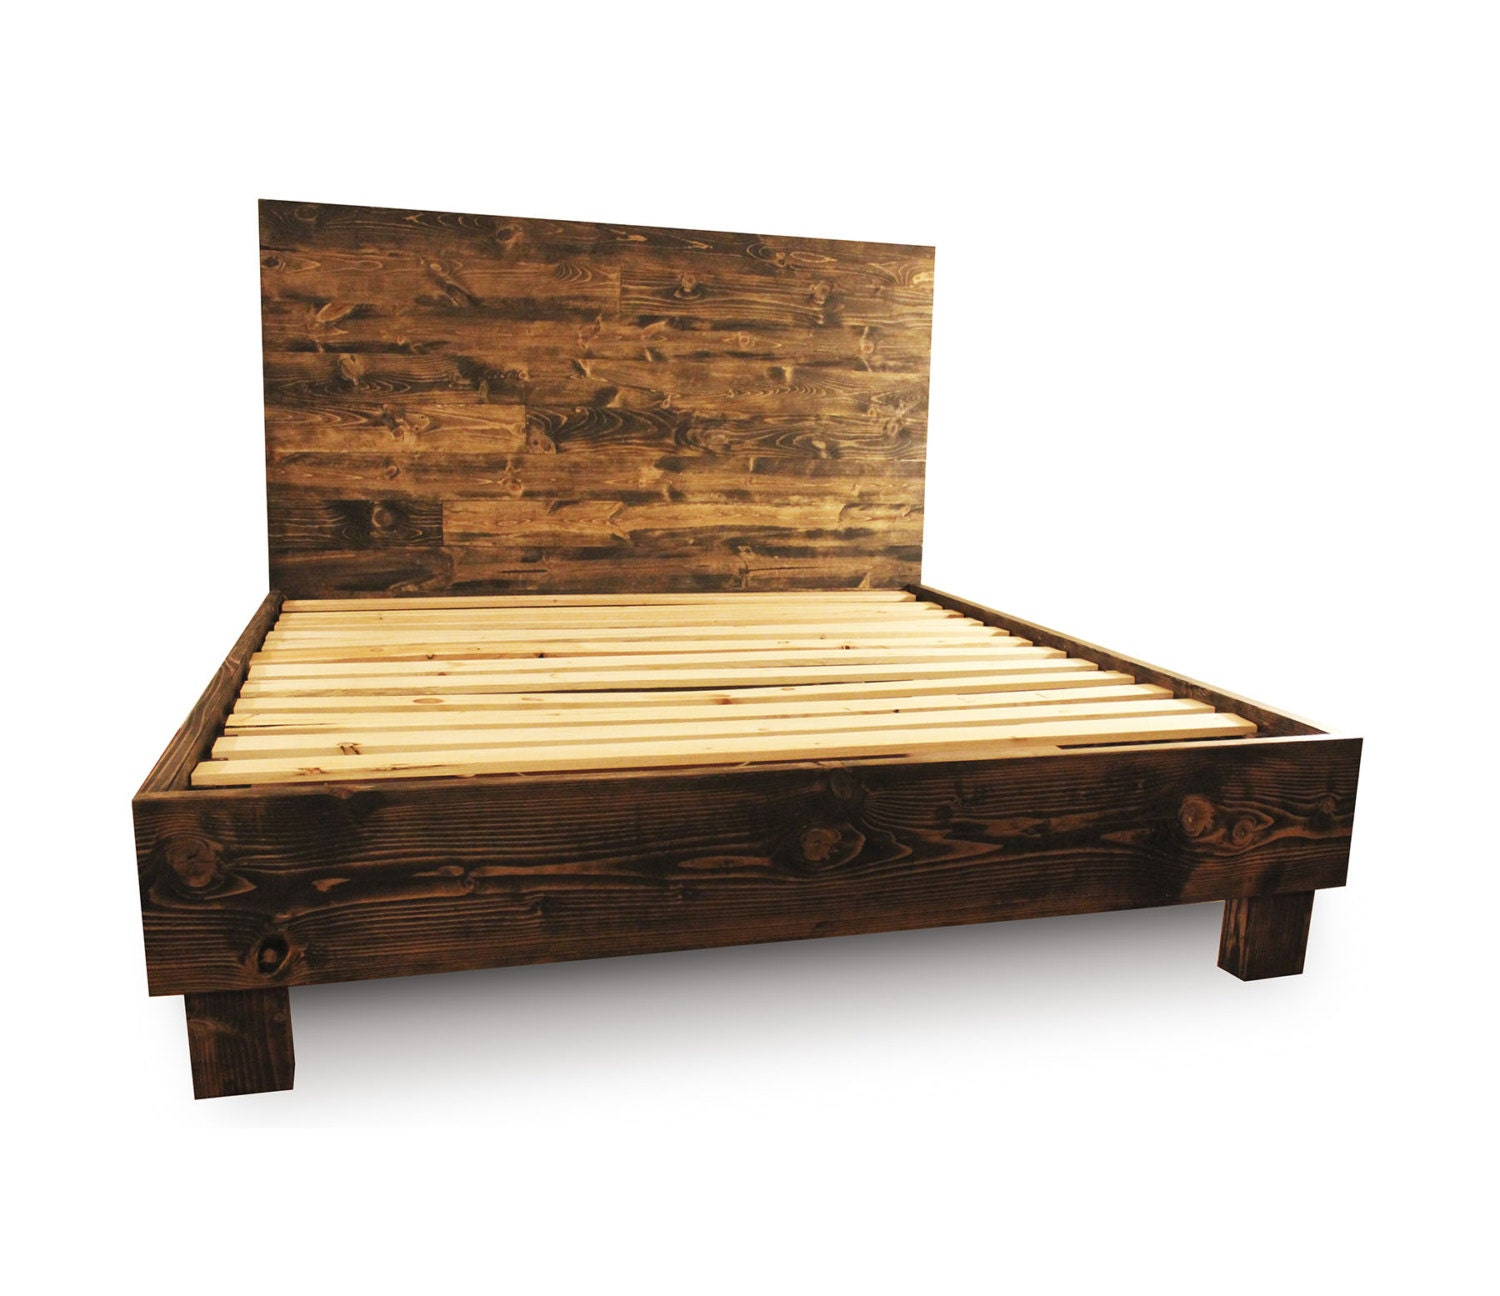 Rustic Solid Wood Platform Bed Frame & Headboard Reclaimed